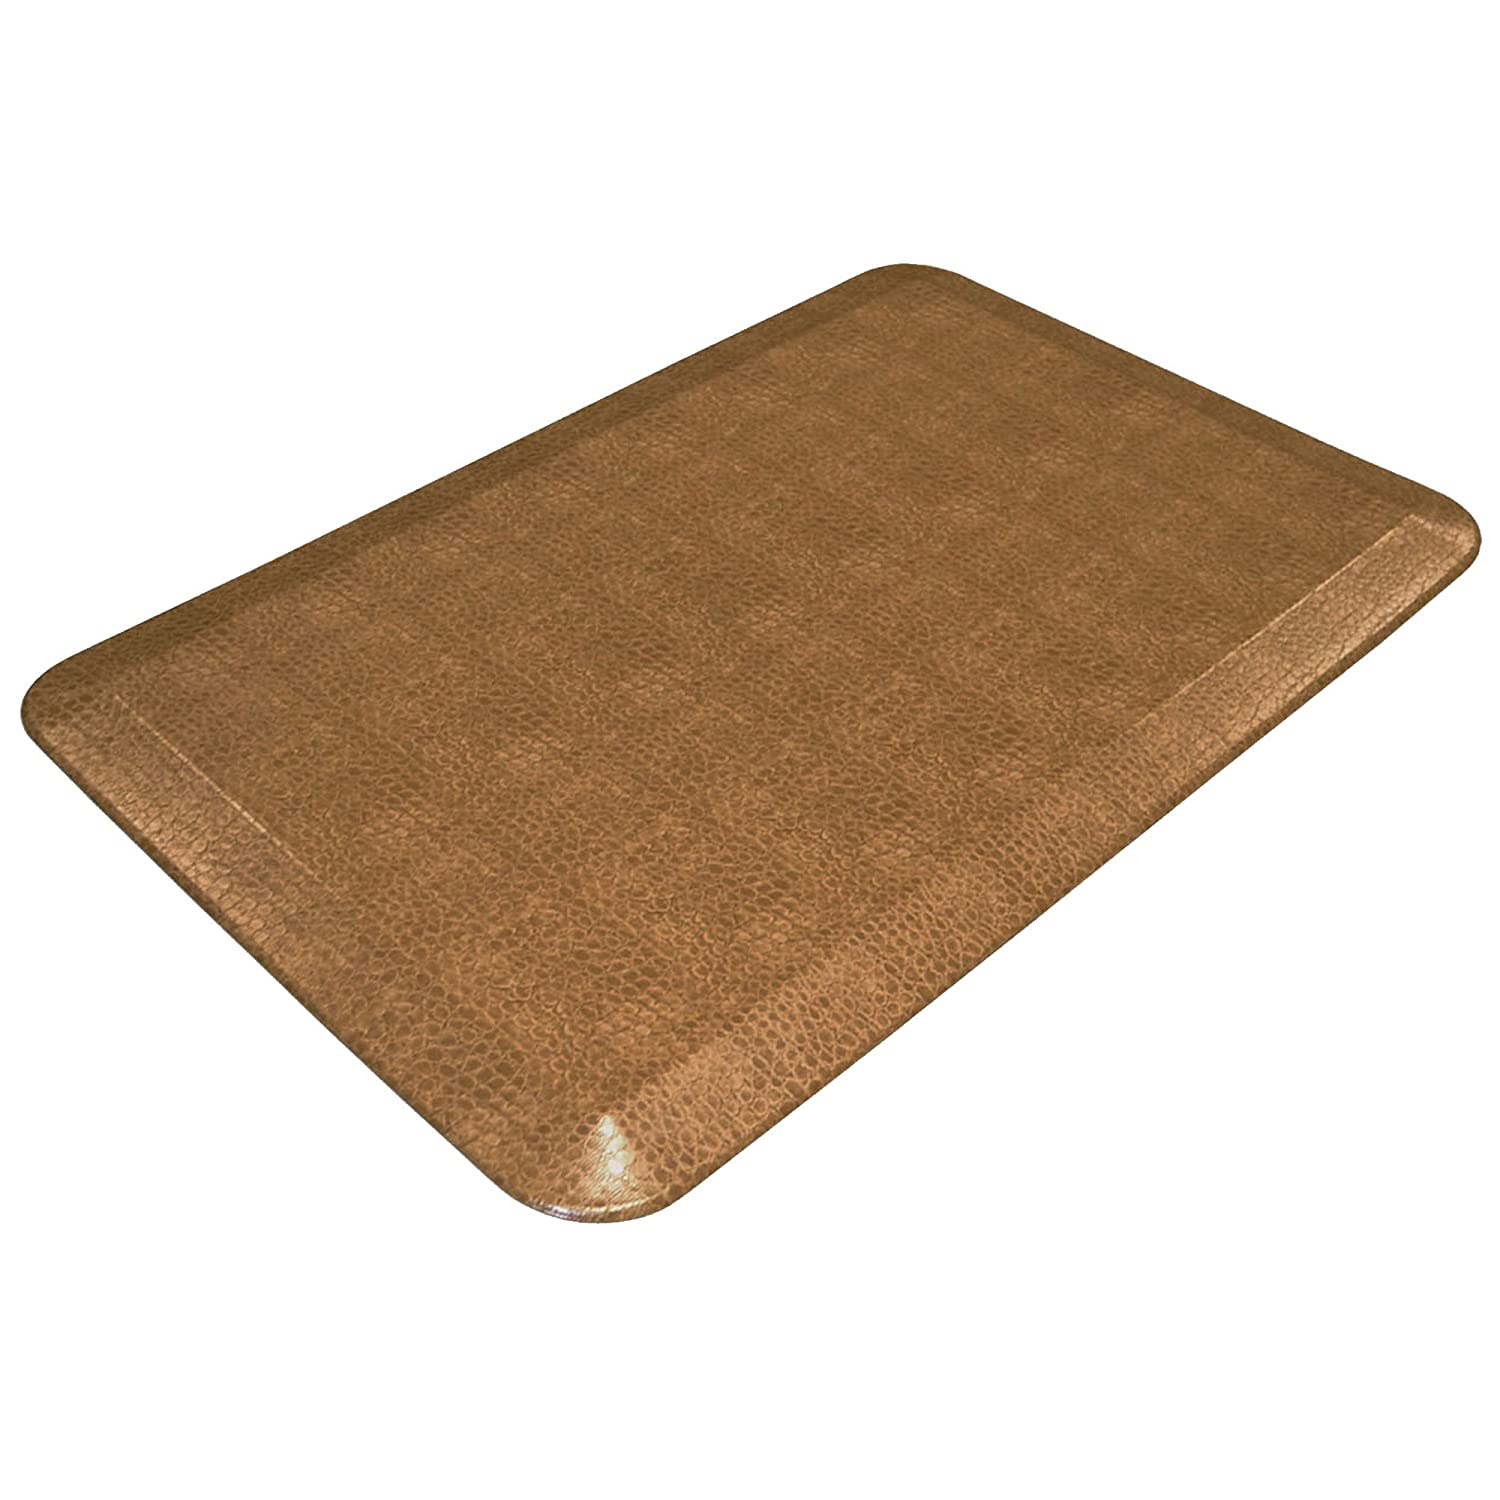 Kitchen Floor Mat Anti Fatigue GelPro Comfort NewLife